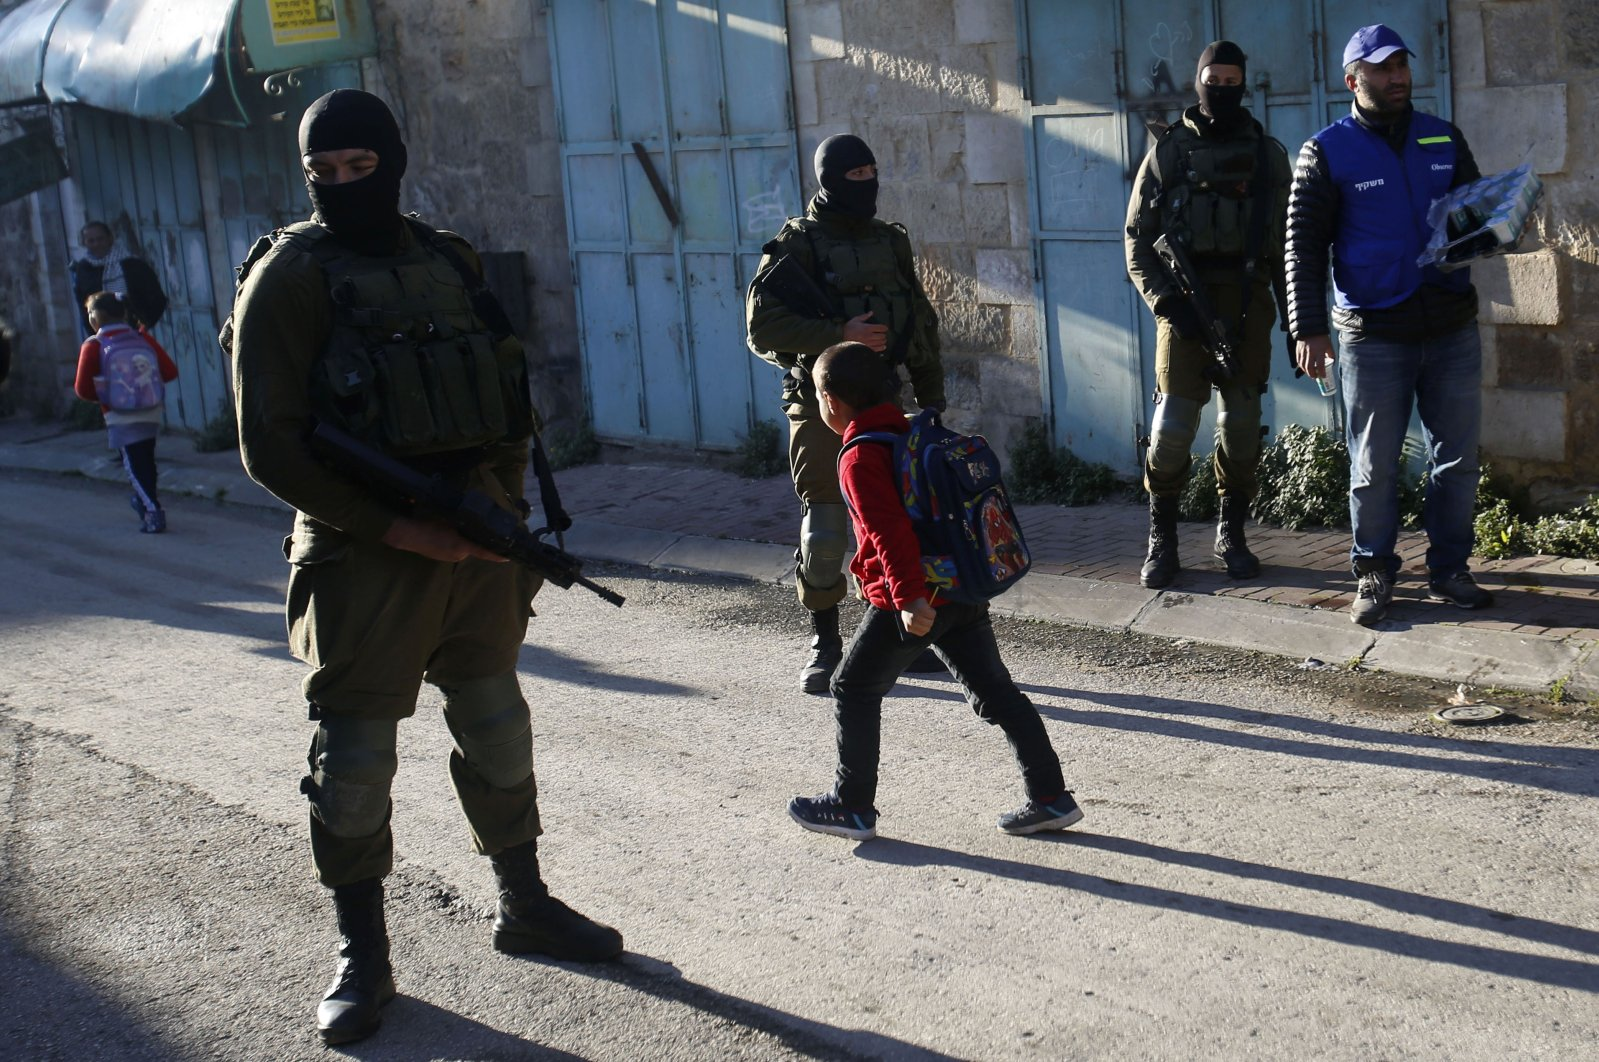 Children walk past Israeli soldiers on their way to school in the West Bank city of Hebron, Palestine, Feb. 12, 2019. (AP Photo)